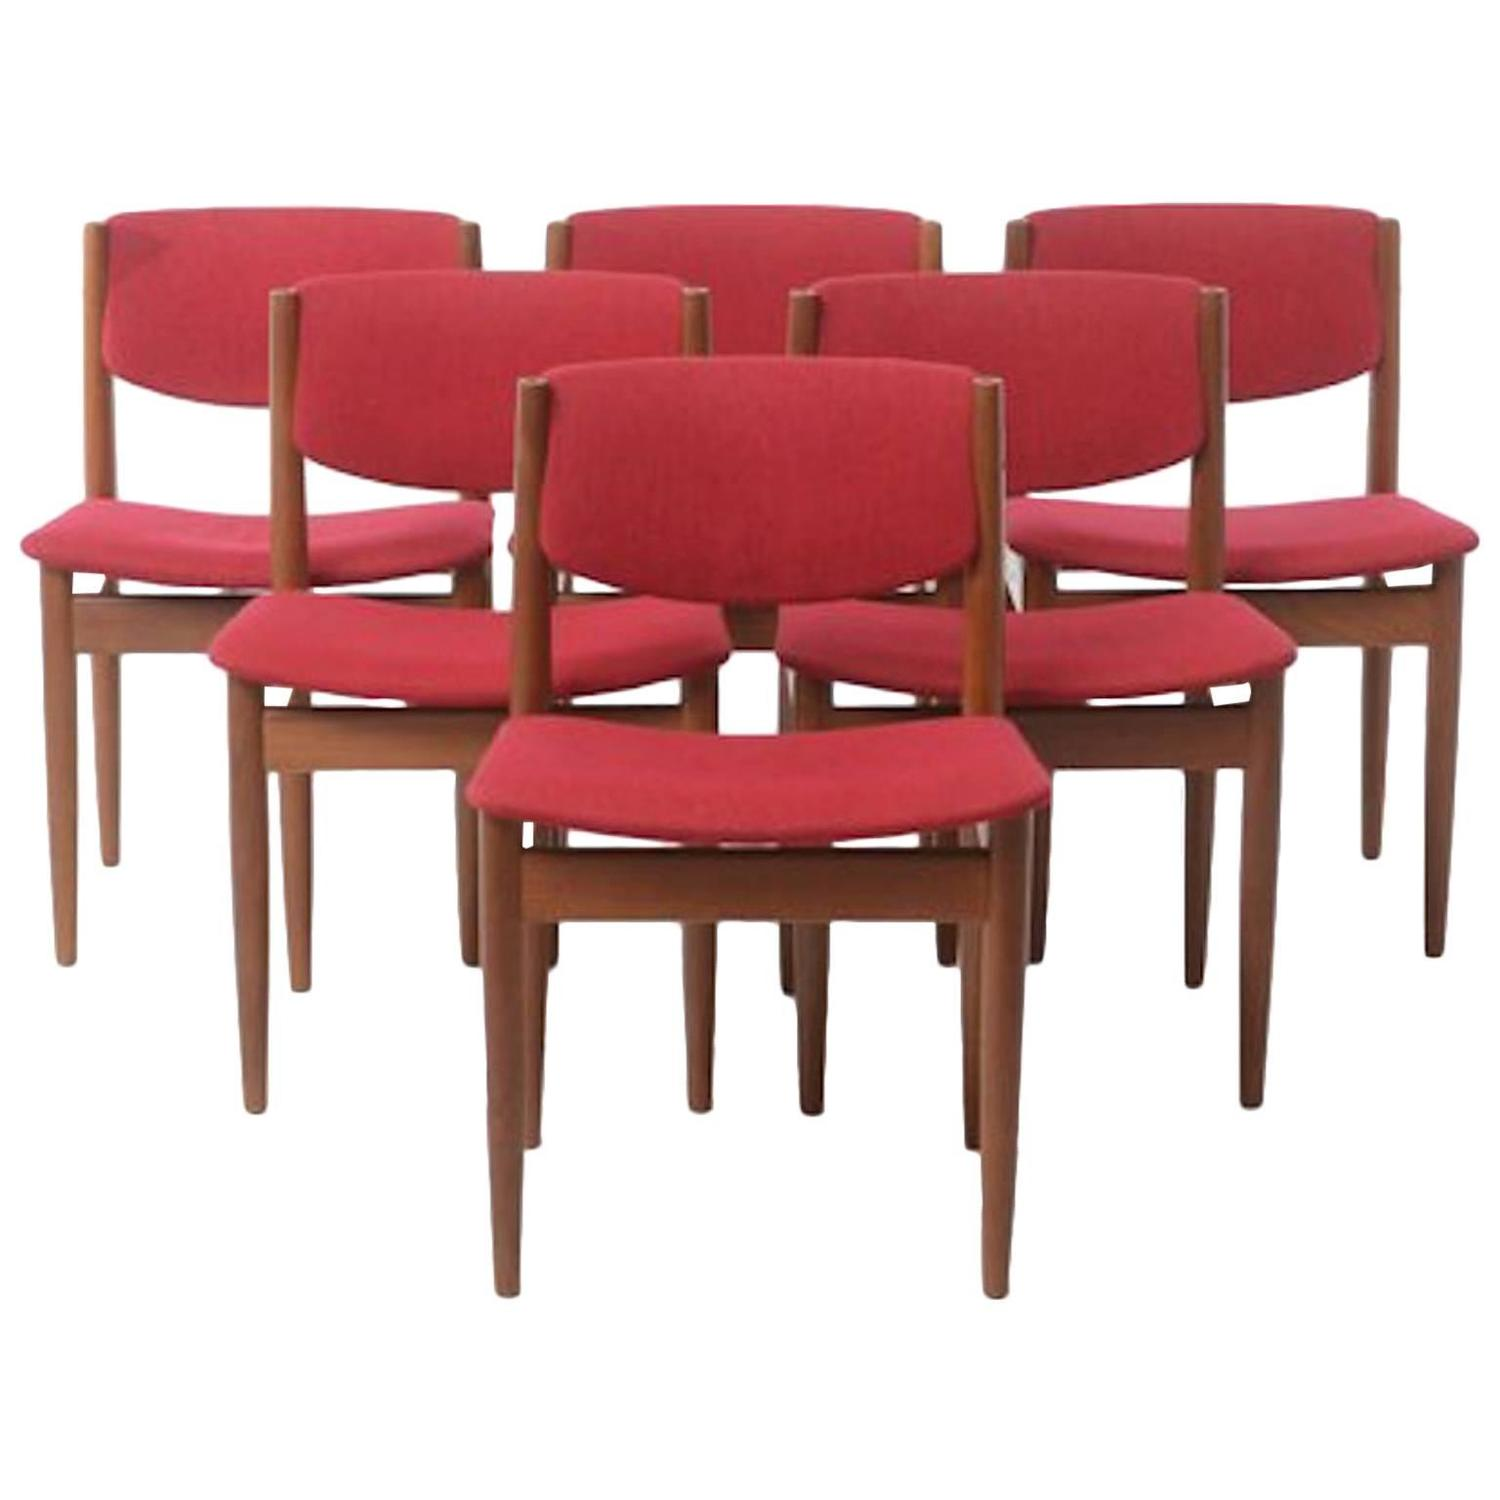 modern dining chairs by finn juhl set of six for sale at 1stdibs